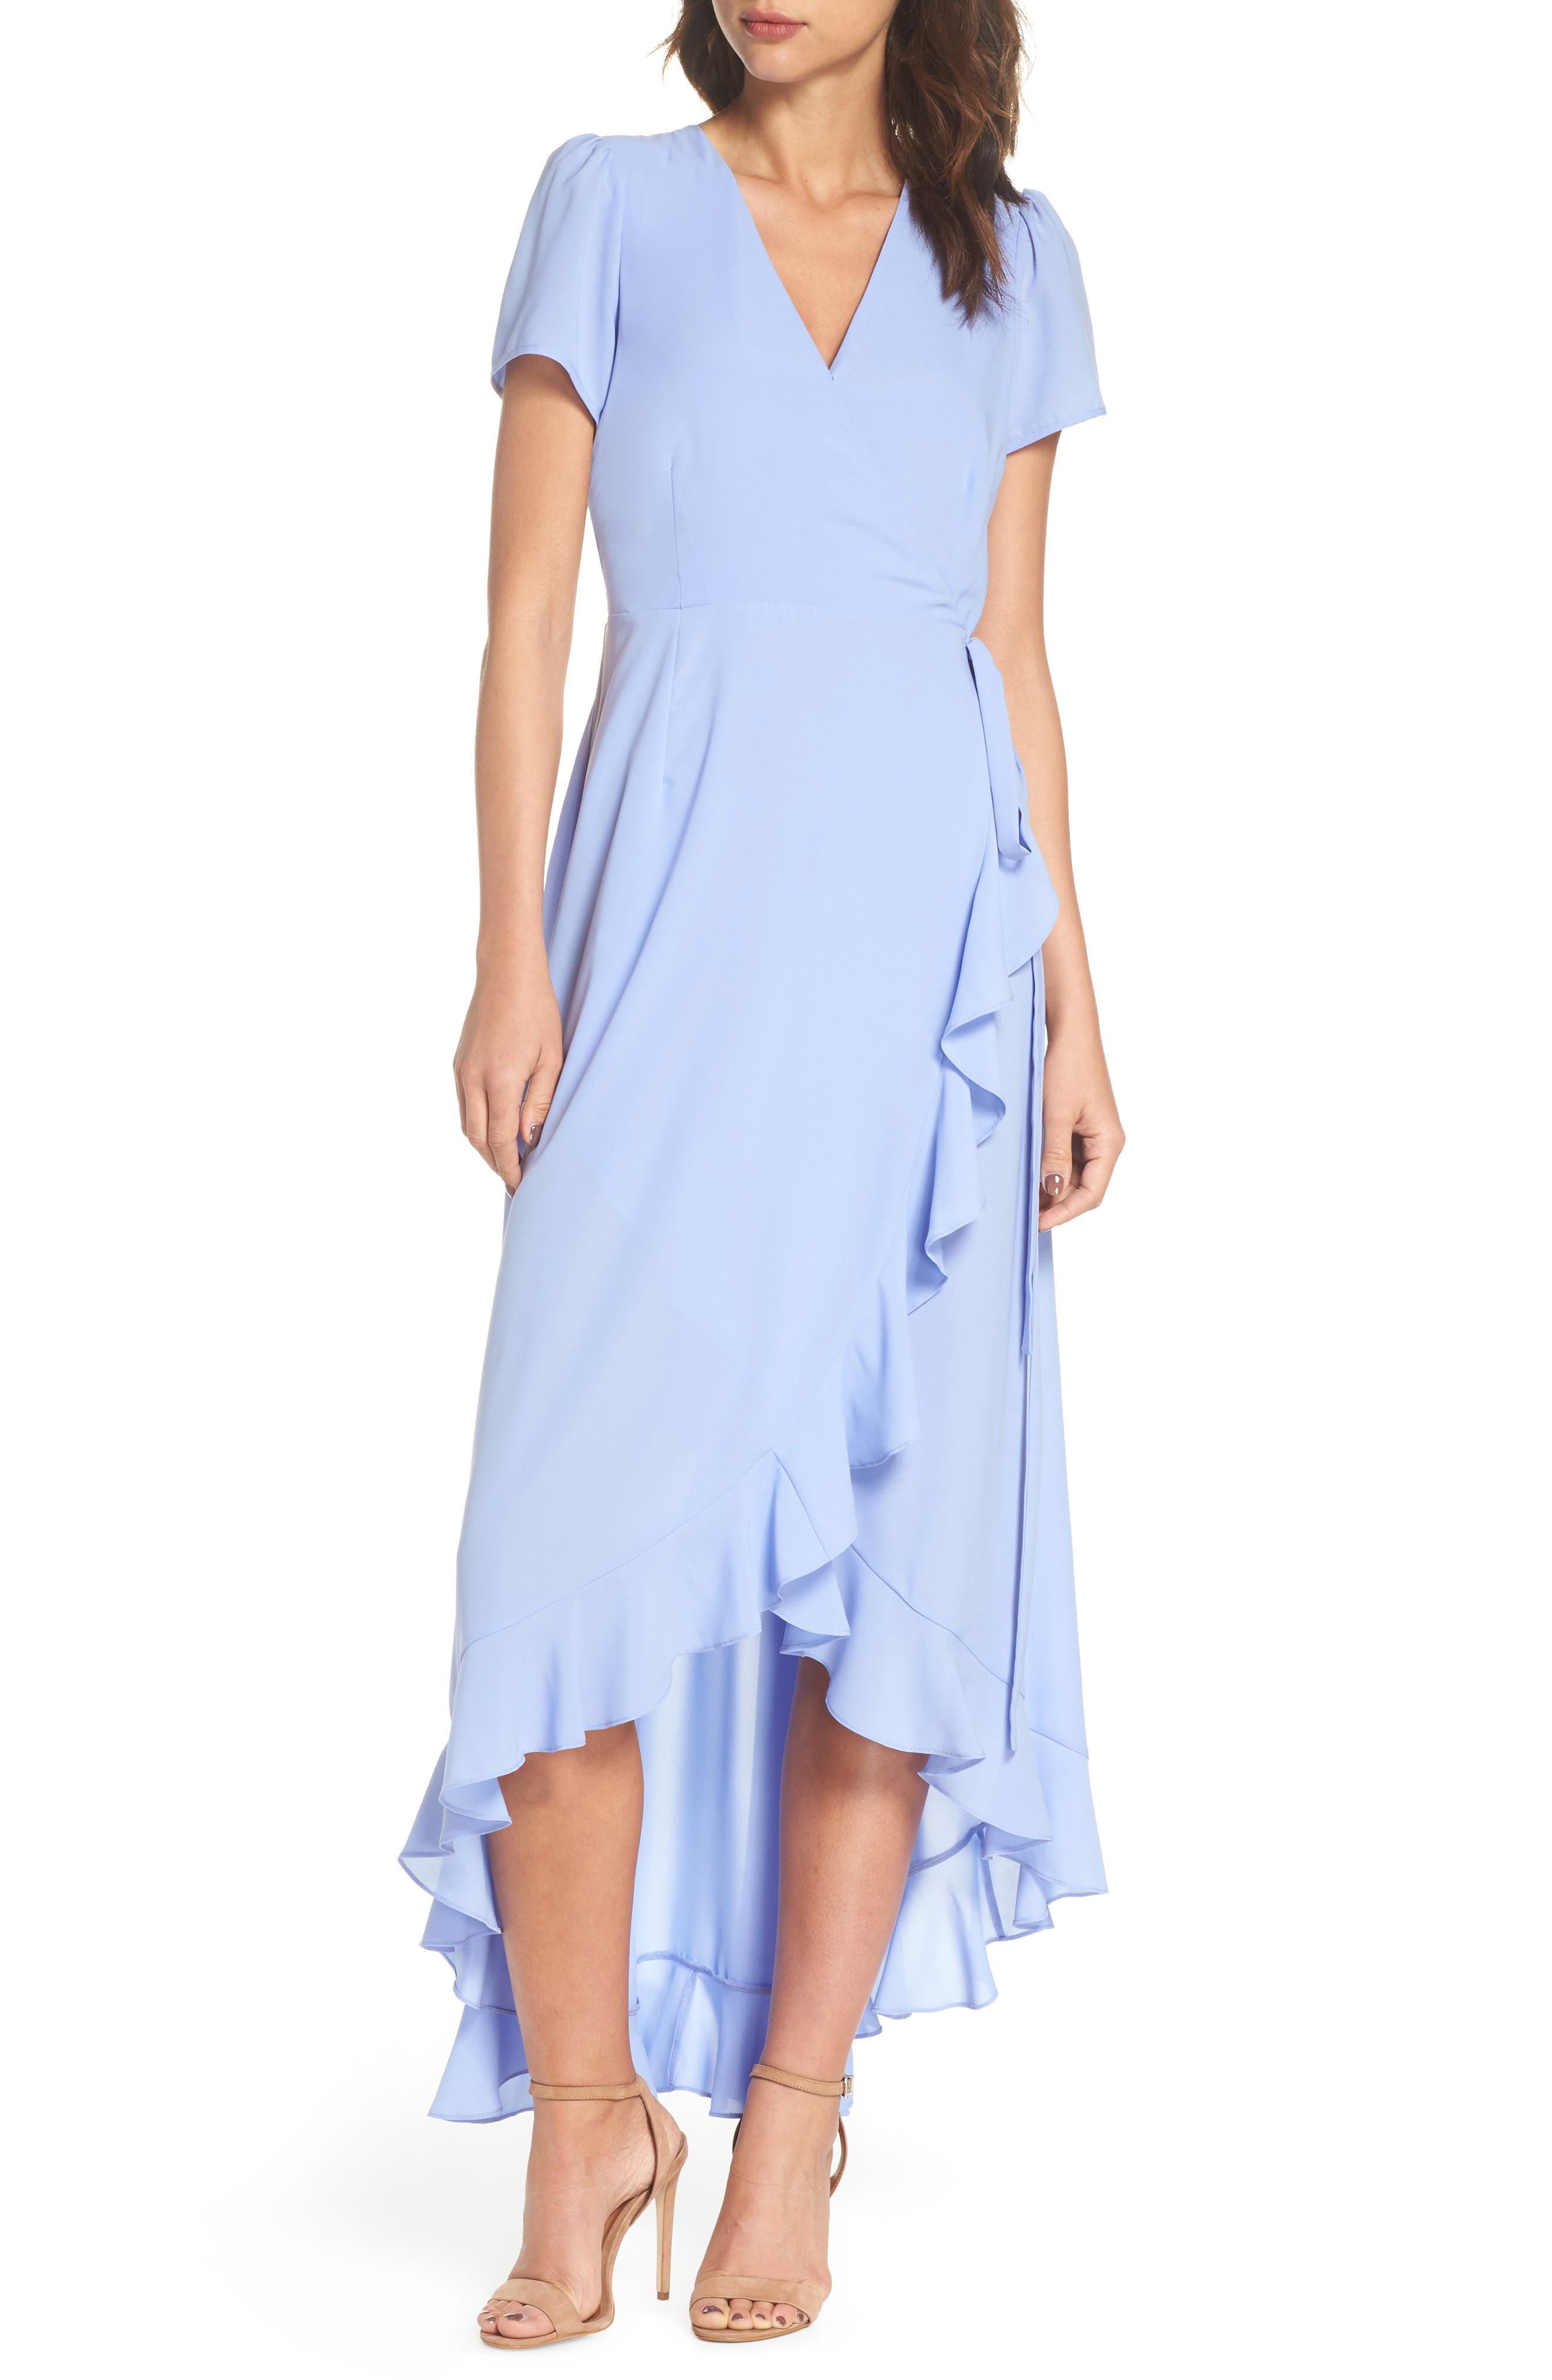 Felicity & Coco Madge Ruffle Wrap Maxi Dress (Regular & Petite) (Nordstrom Exclusive)